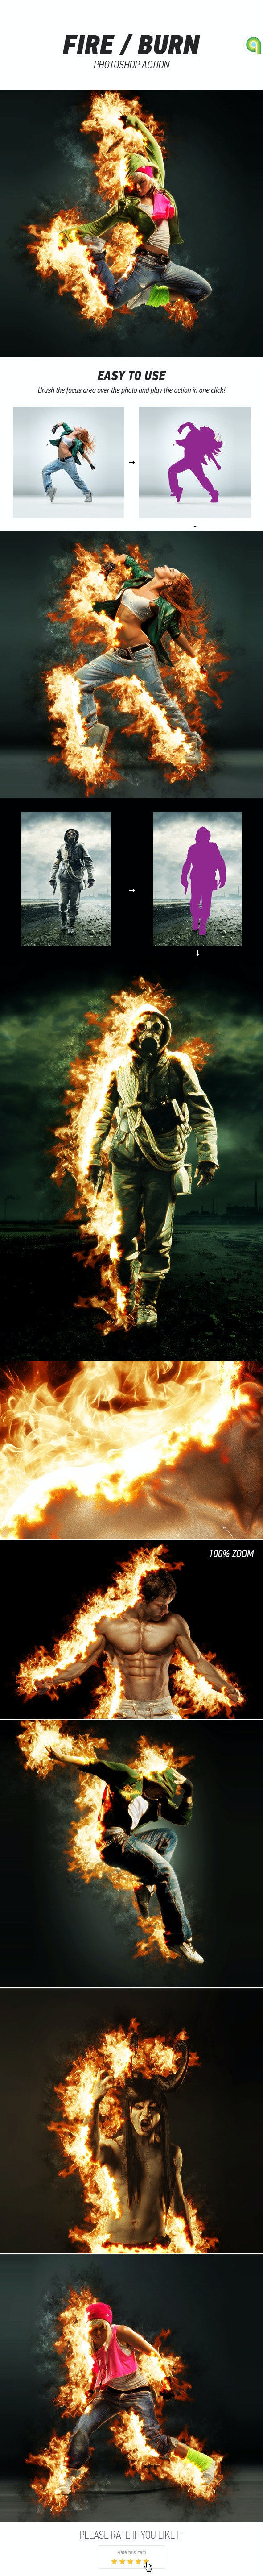 Fire / Burn Photoshop Action - Photo Effects Actions